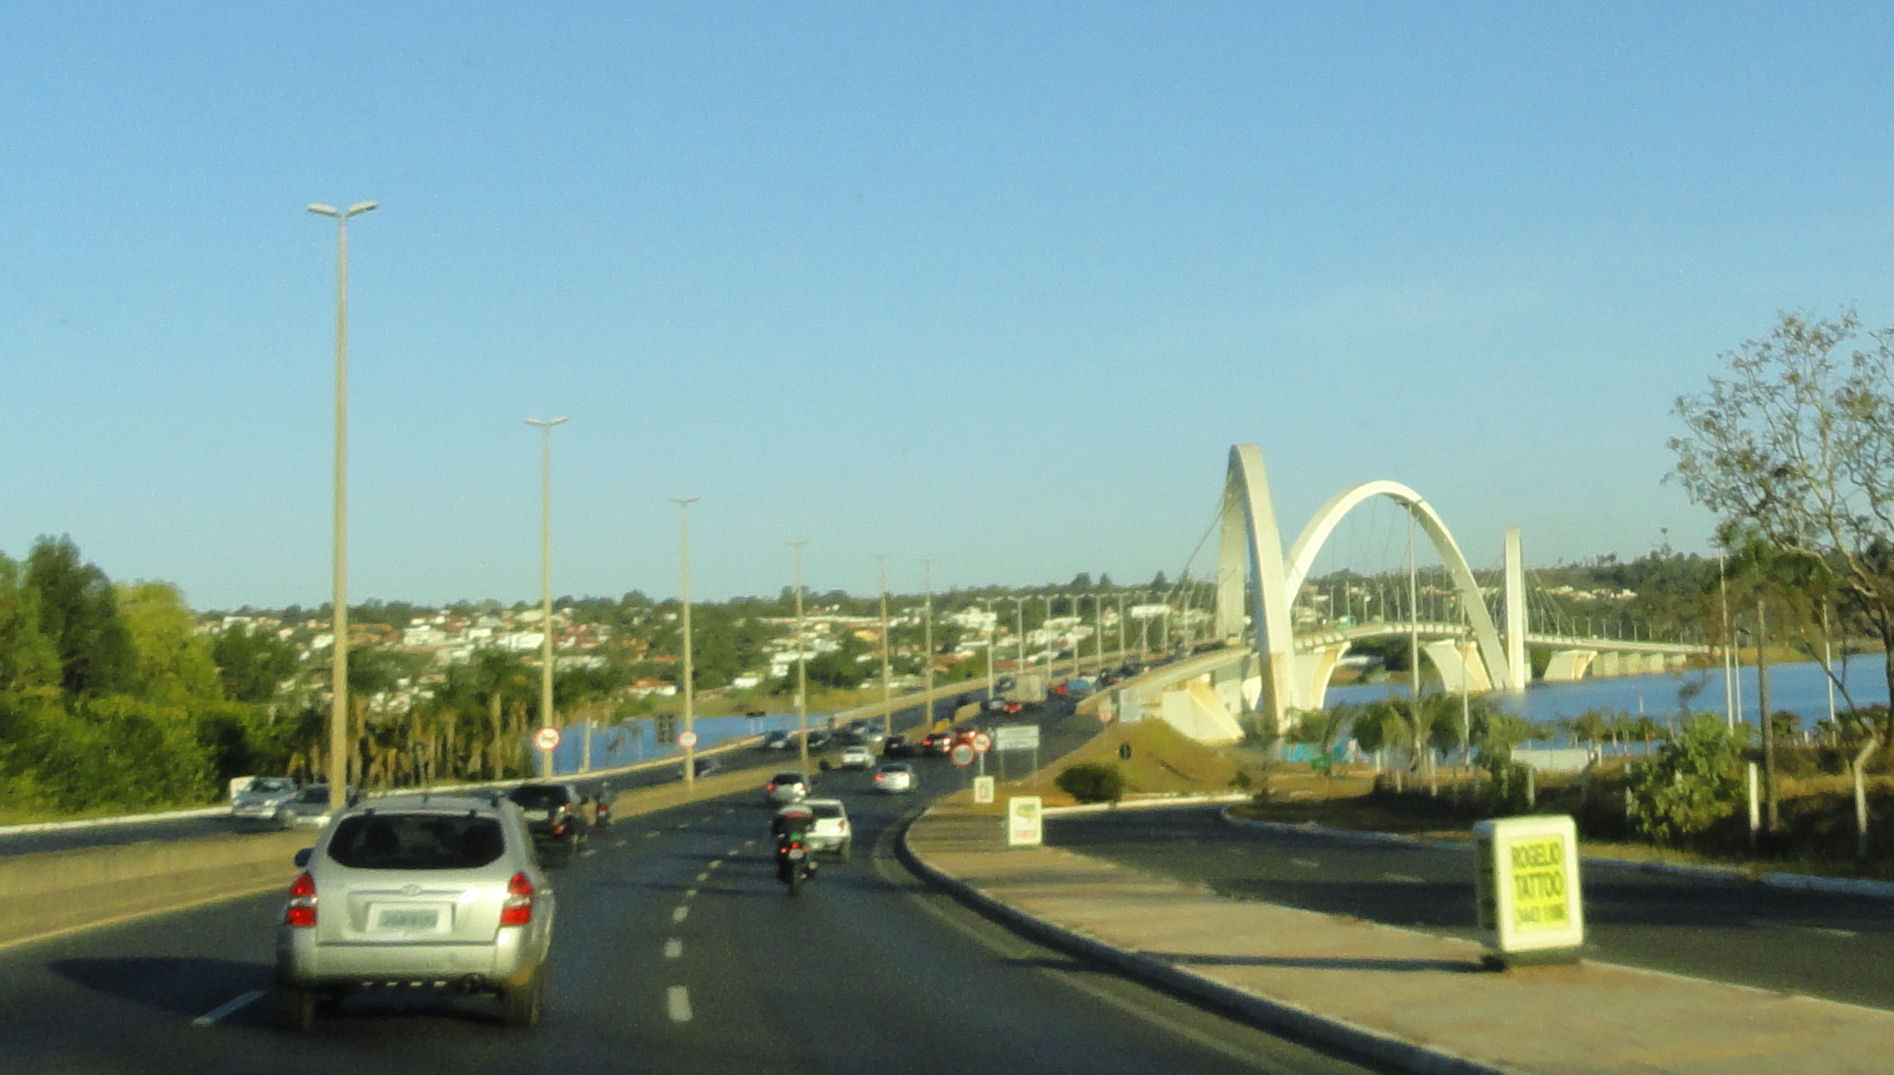 JK Bridge in Brasilia